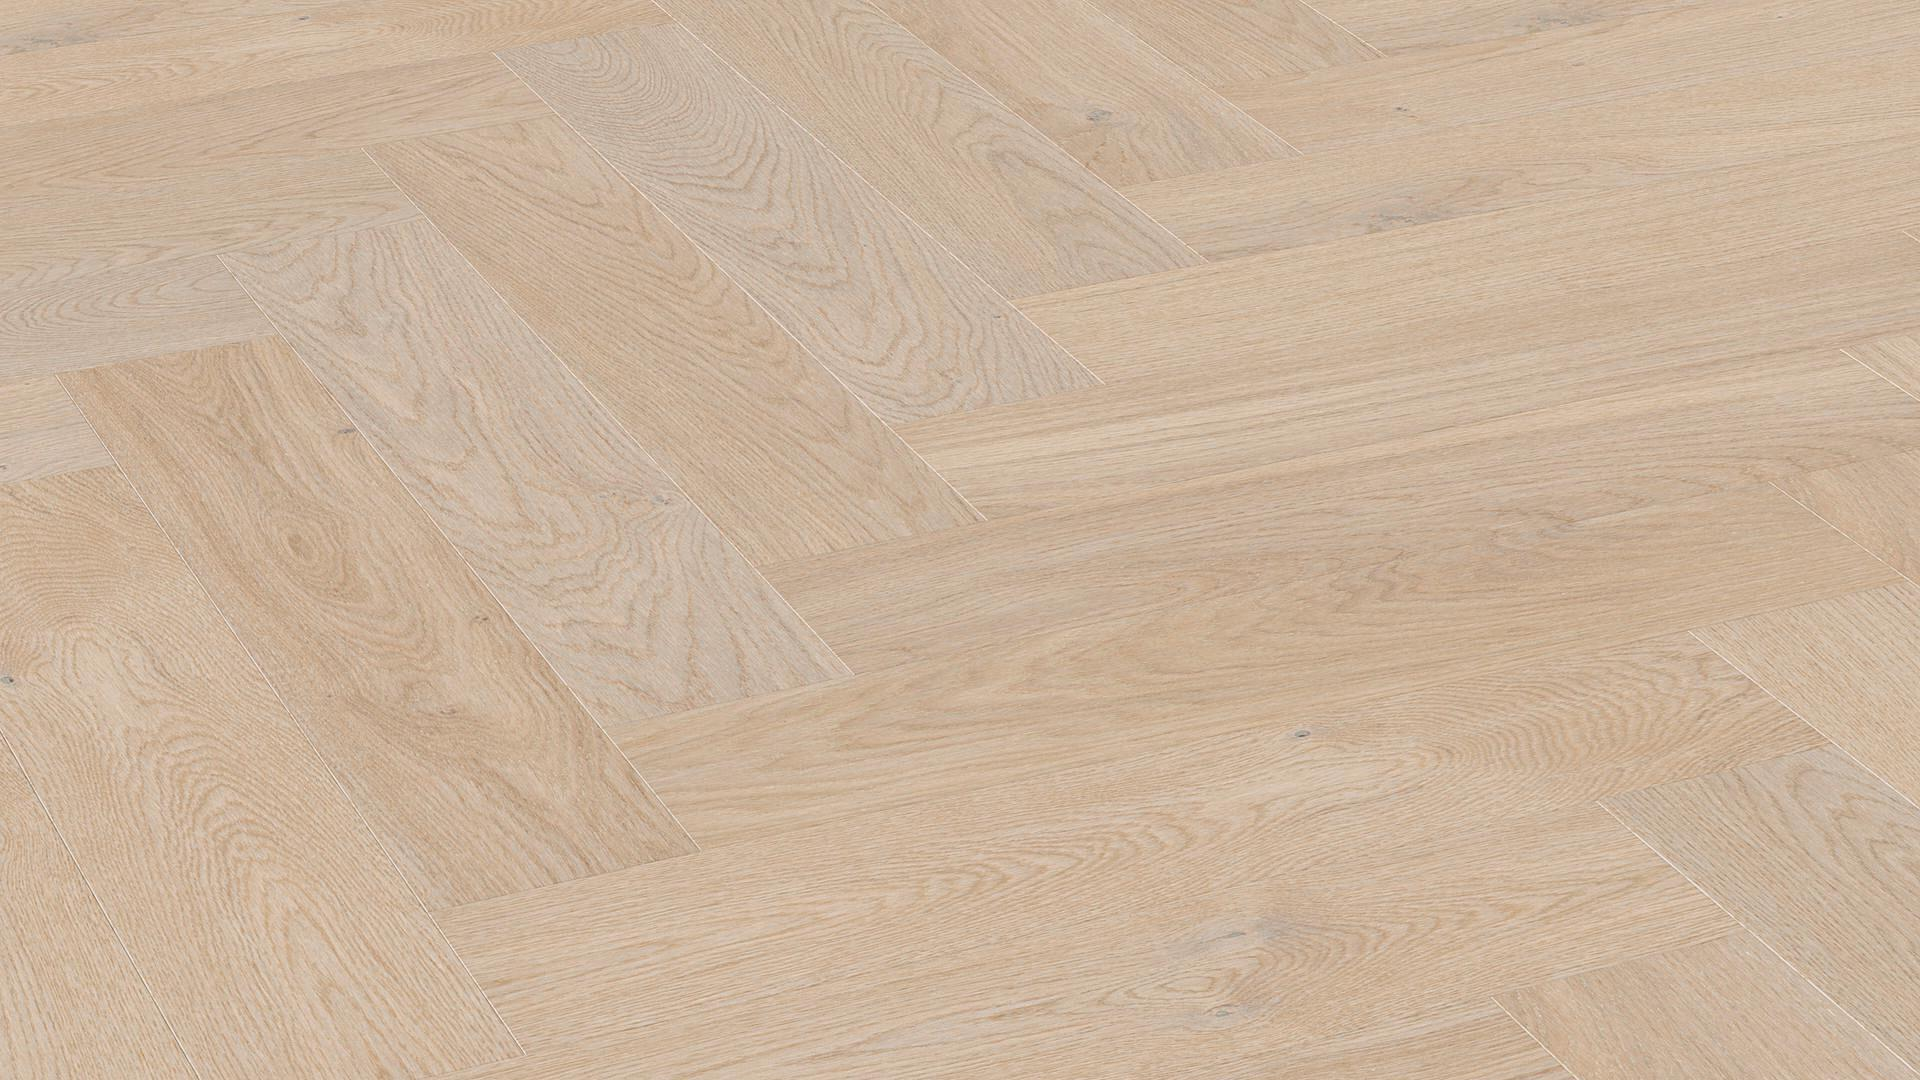 Parquet MeisterParquet. longlife PS 500 Roble armónico pearl 8816